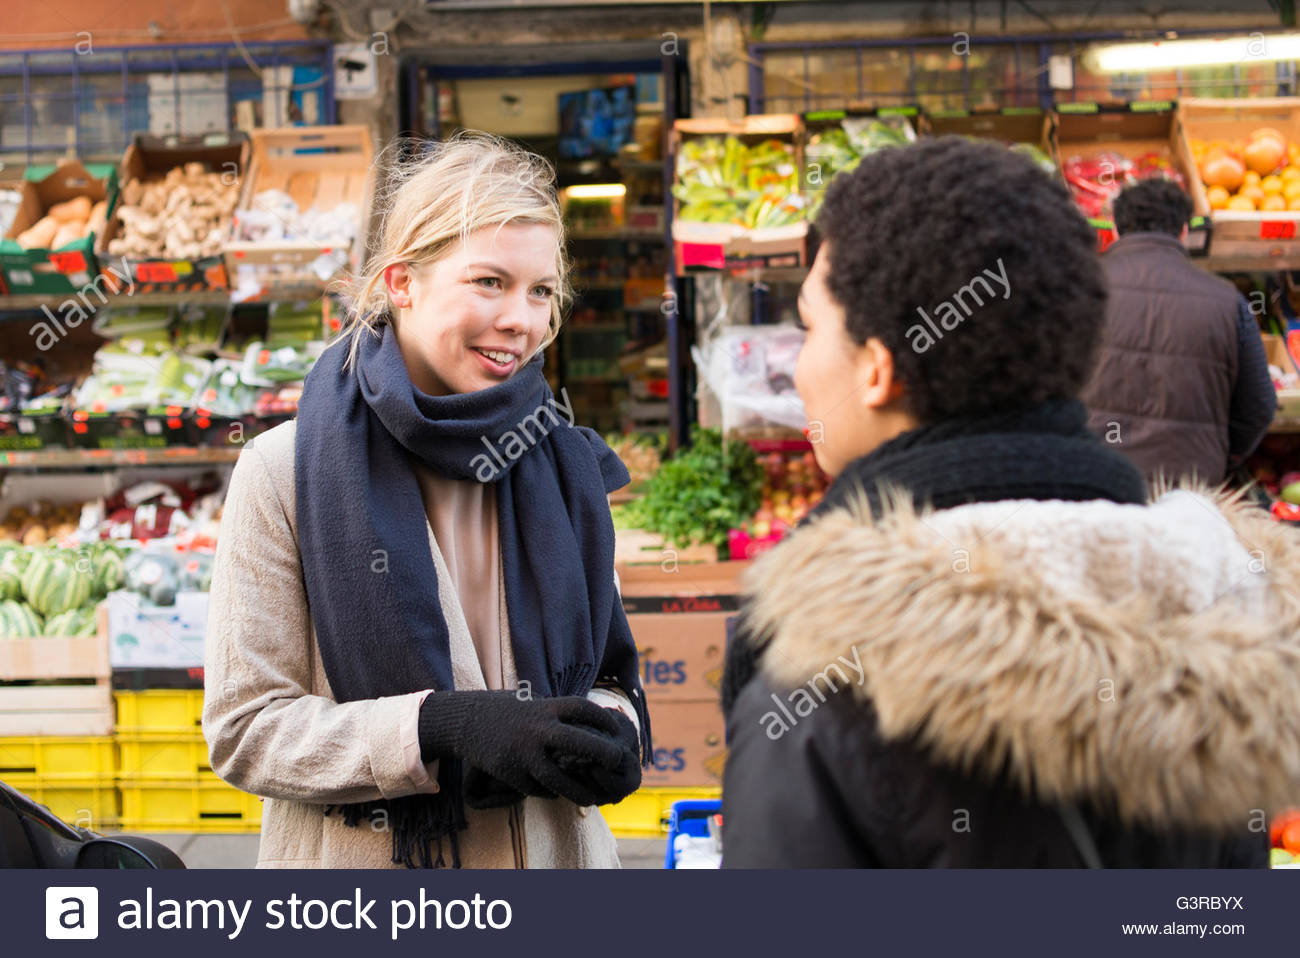 Sweden, Skane, Malmo, Two young women talking Stock Photo